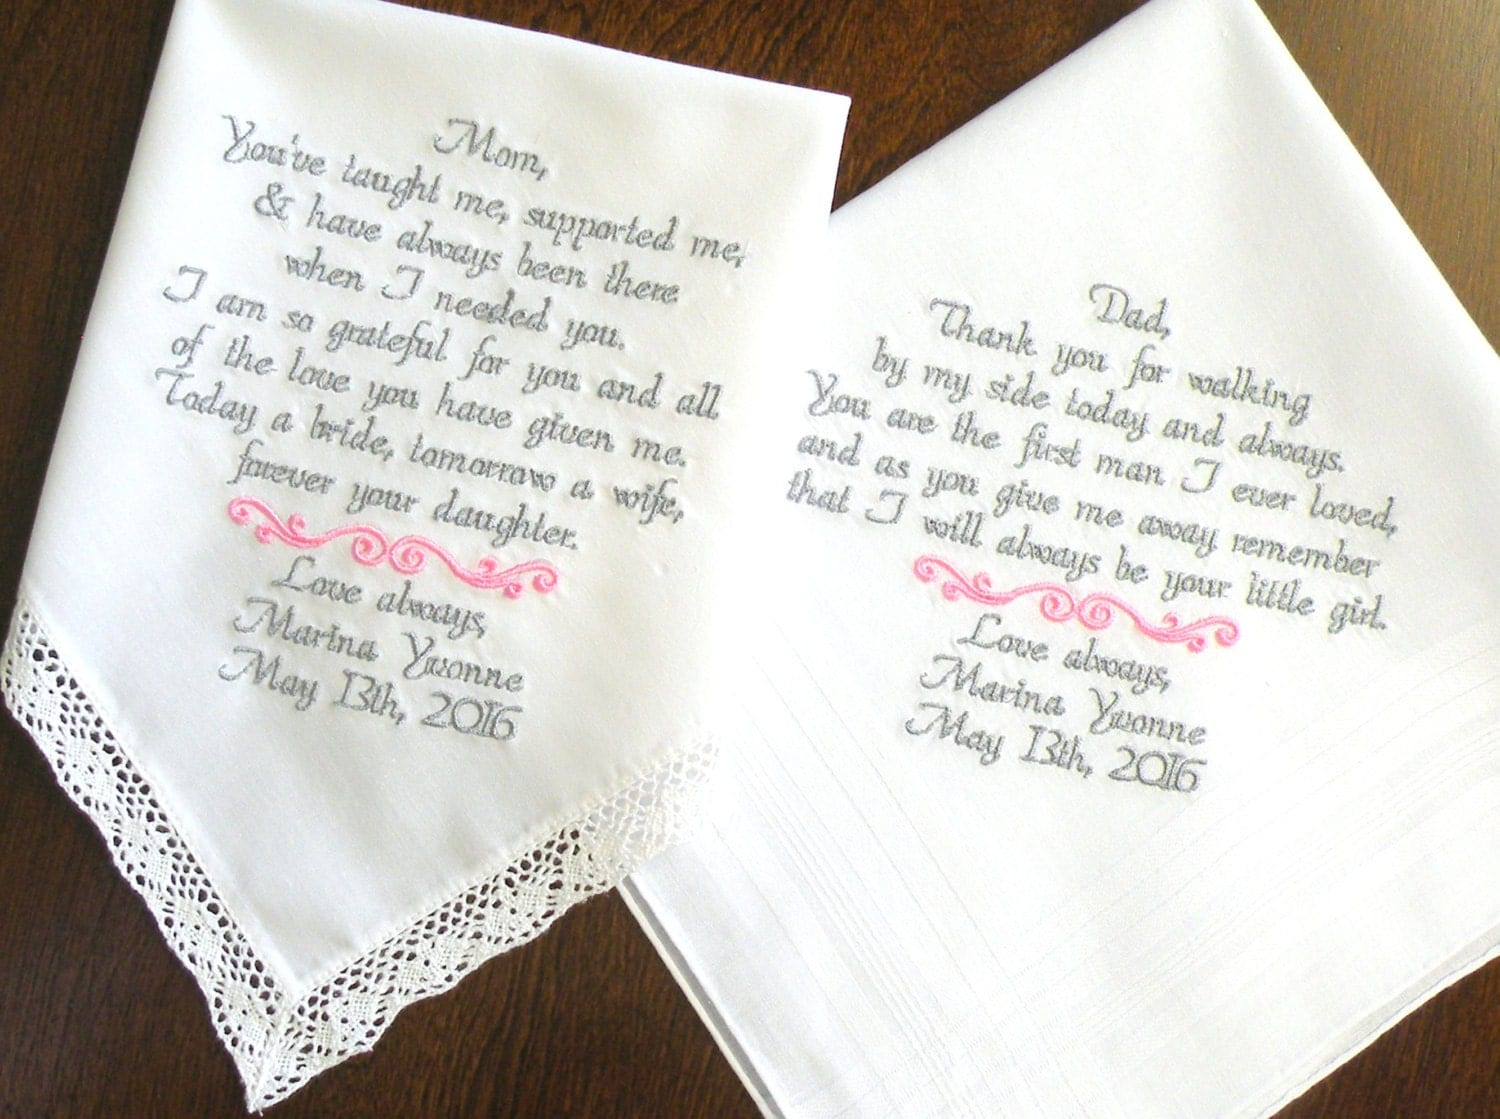 Gifts For Bride On Wedding Day From Bridesmaid: Mom And Dad Wedding Gift Mother Of The Bride Father Of The